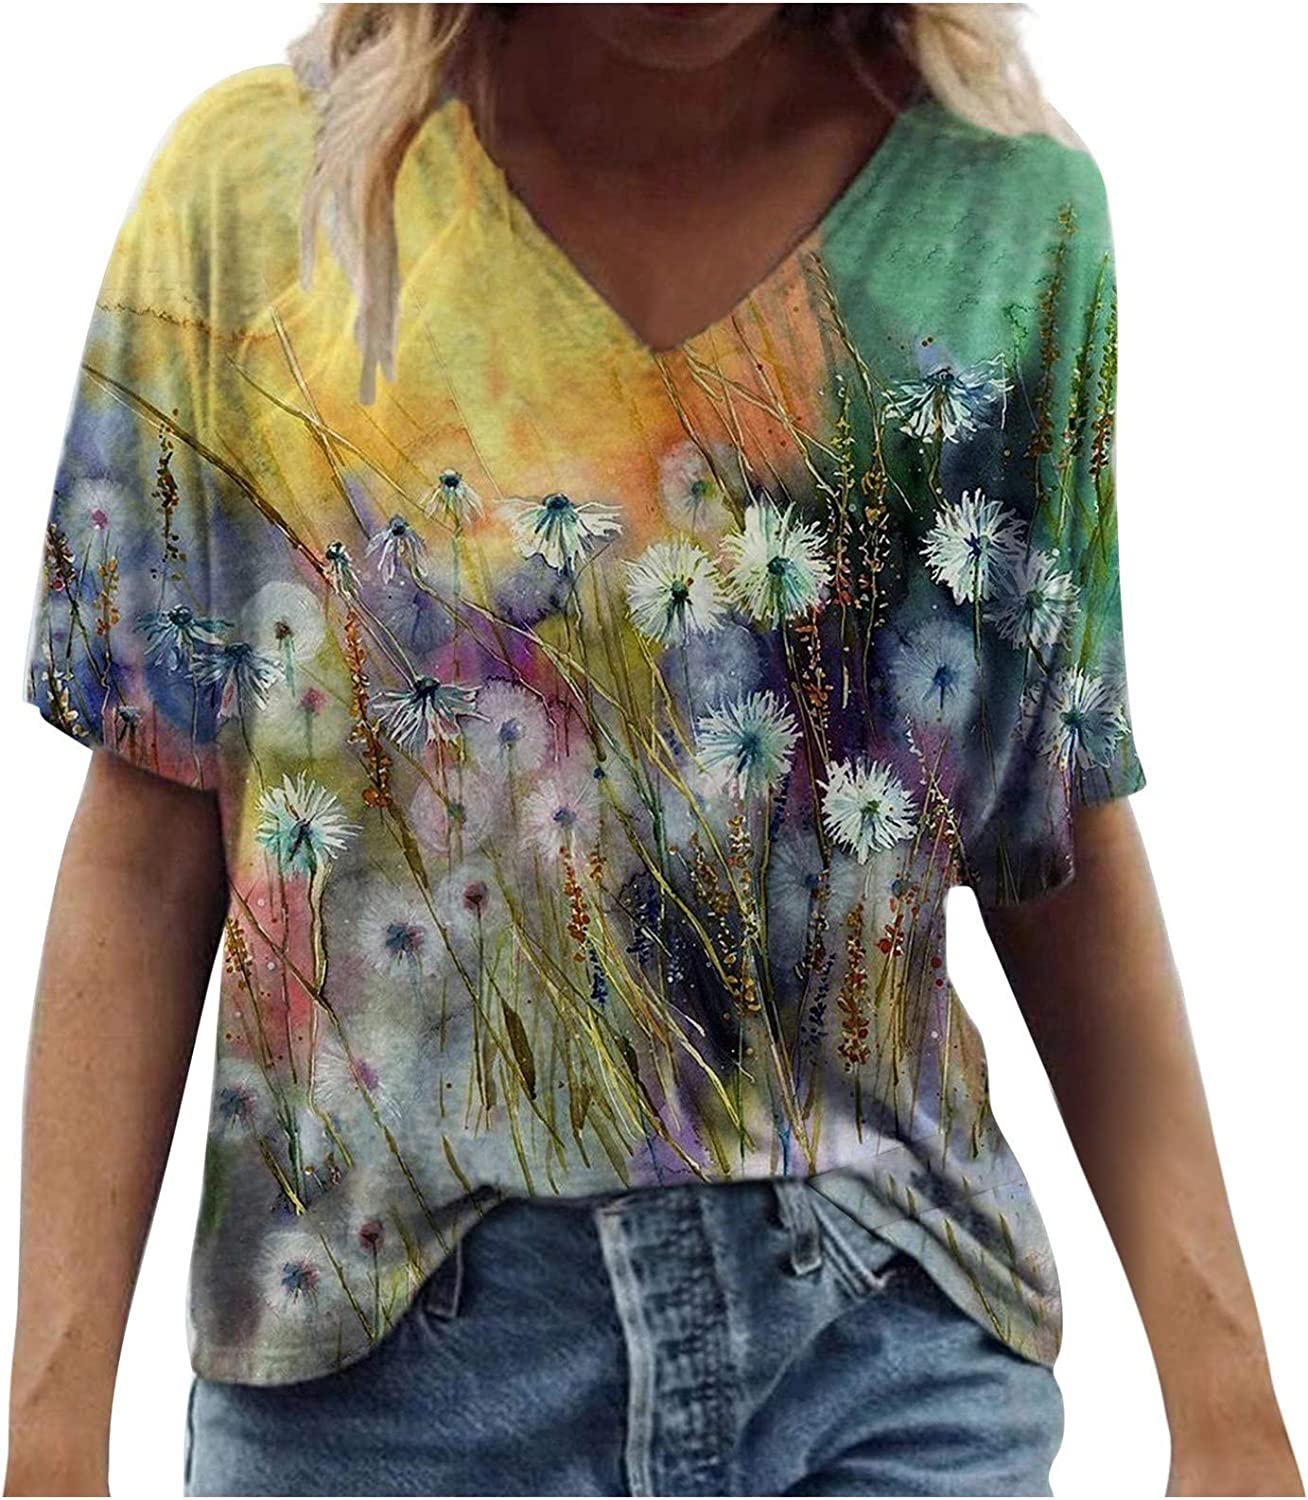 Women's Short Sleeve Tops Indefinitely Cheap sale Summer Flor Tunic Neck V Colorful